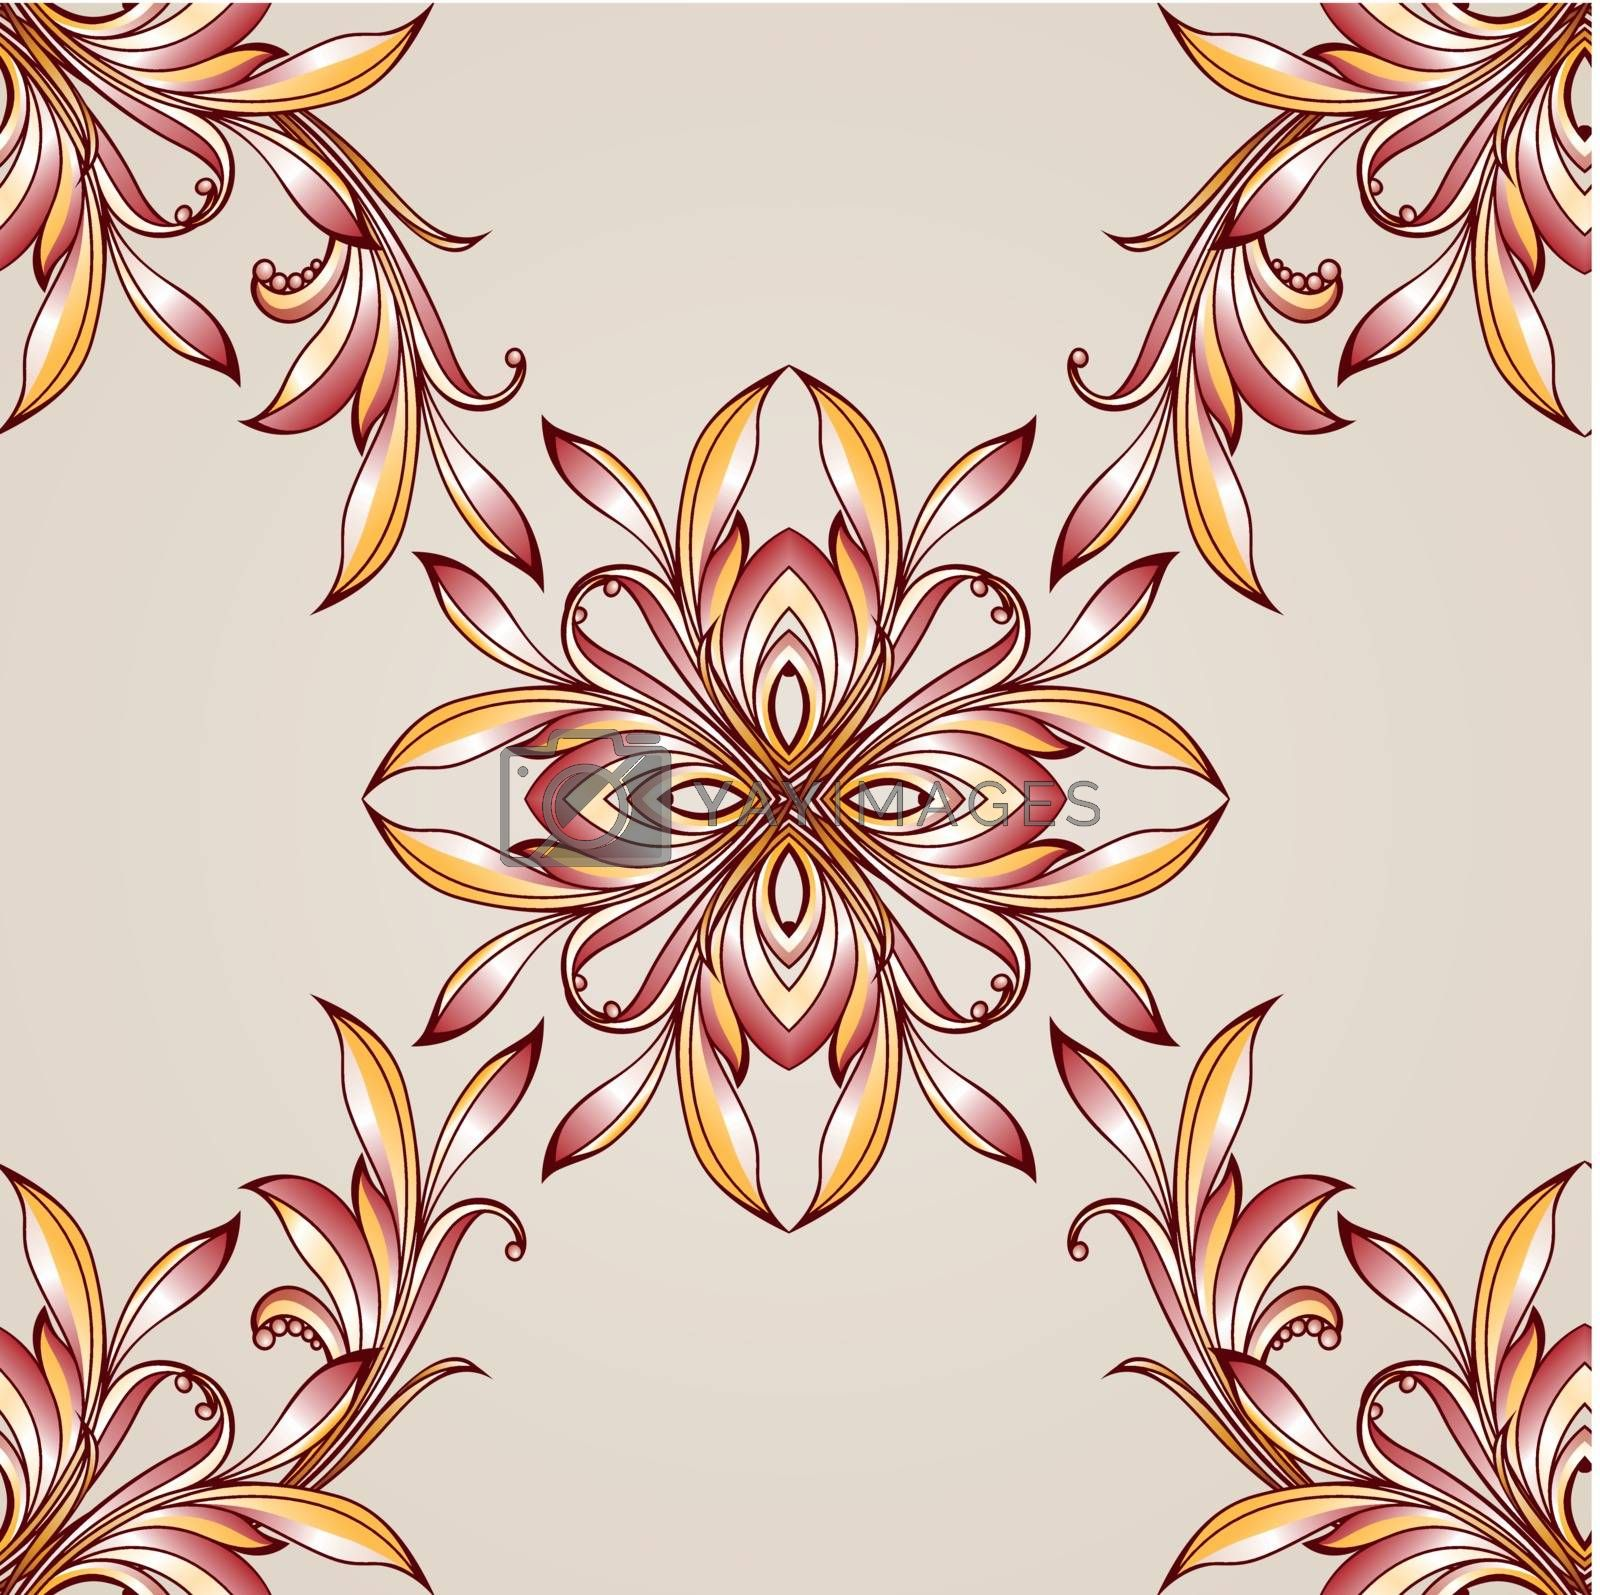 Intersecting seamless floral pattern on light beige background